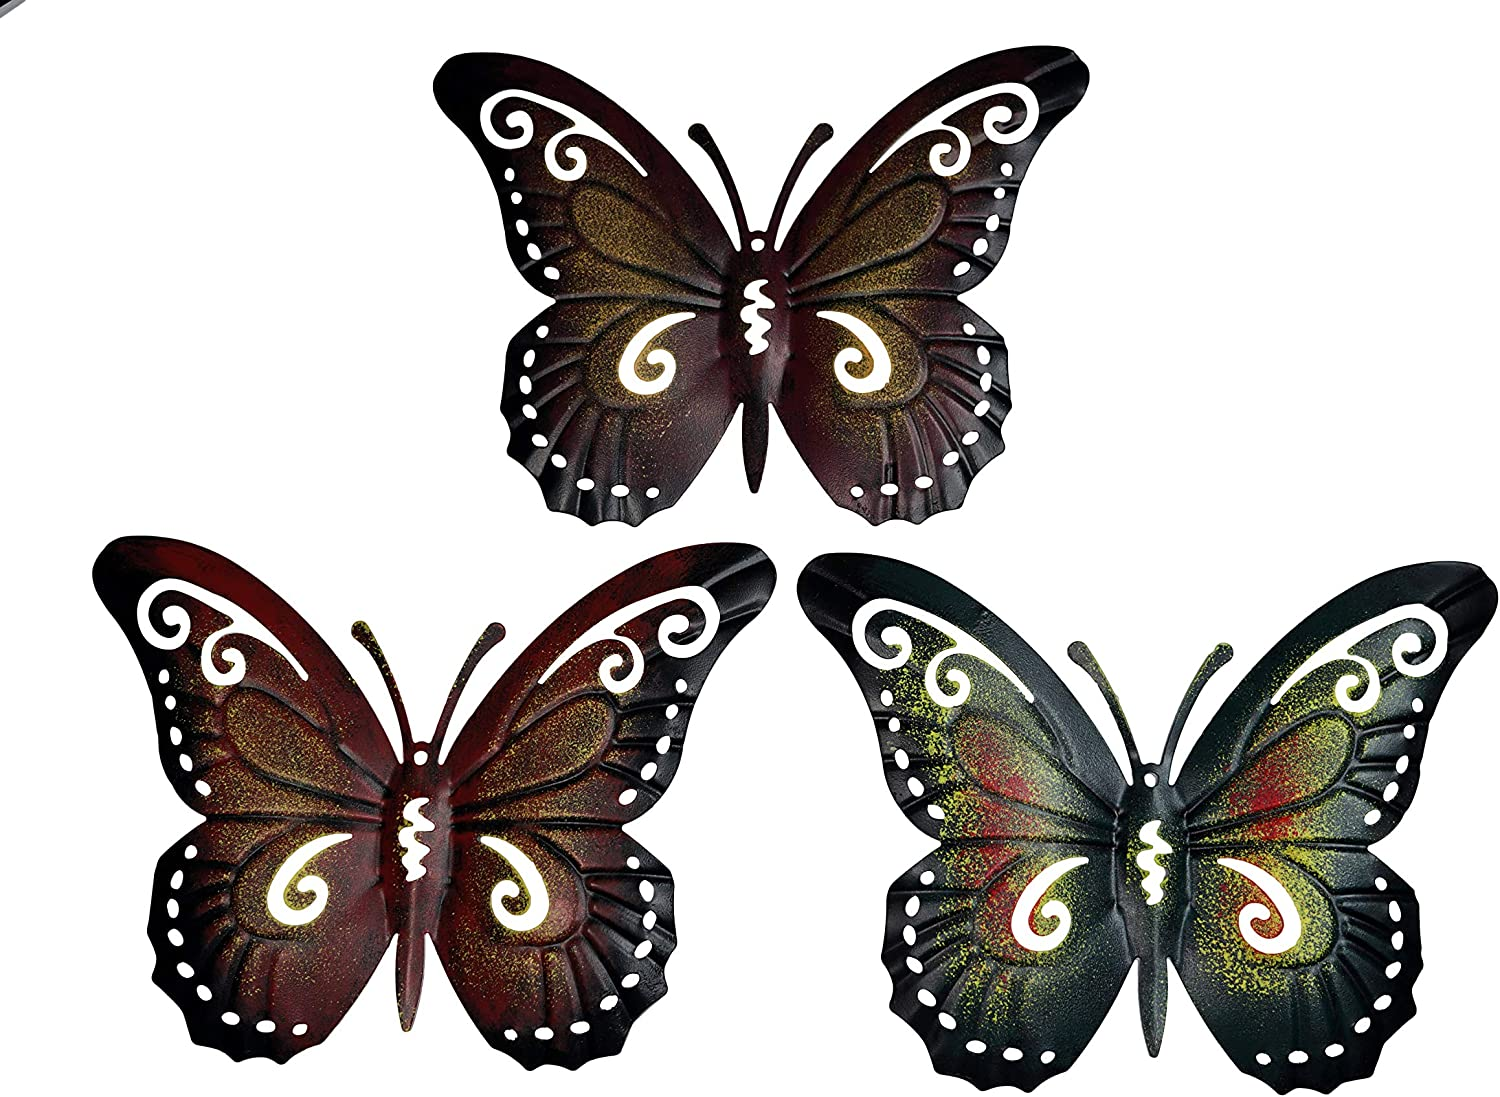 khevga metal butterfly wall decor - butterfly wall decorations set of 3